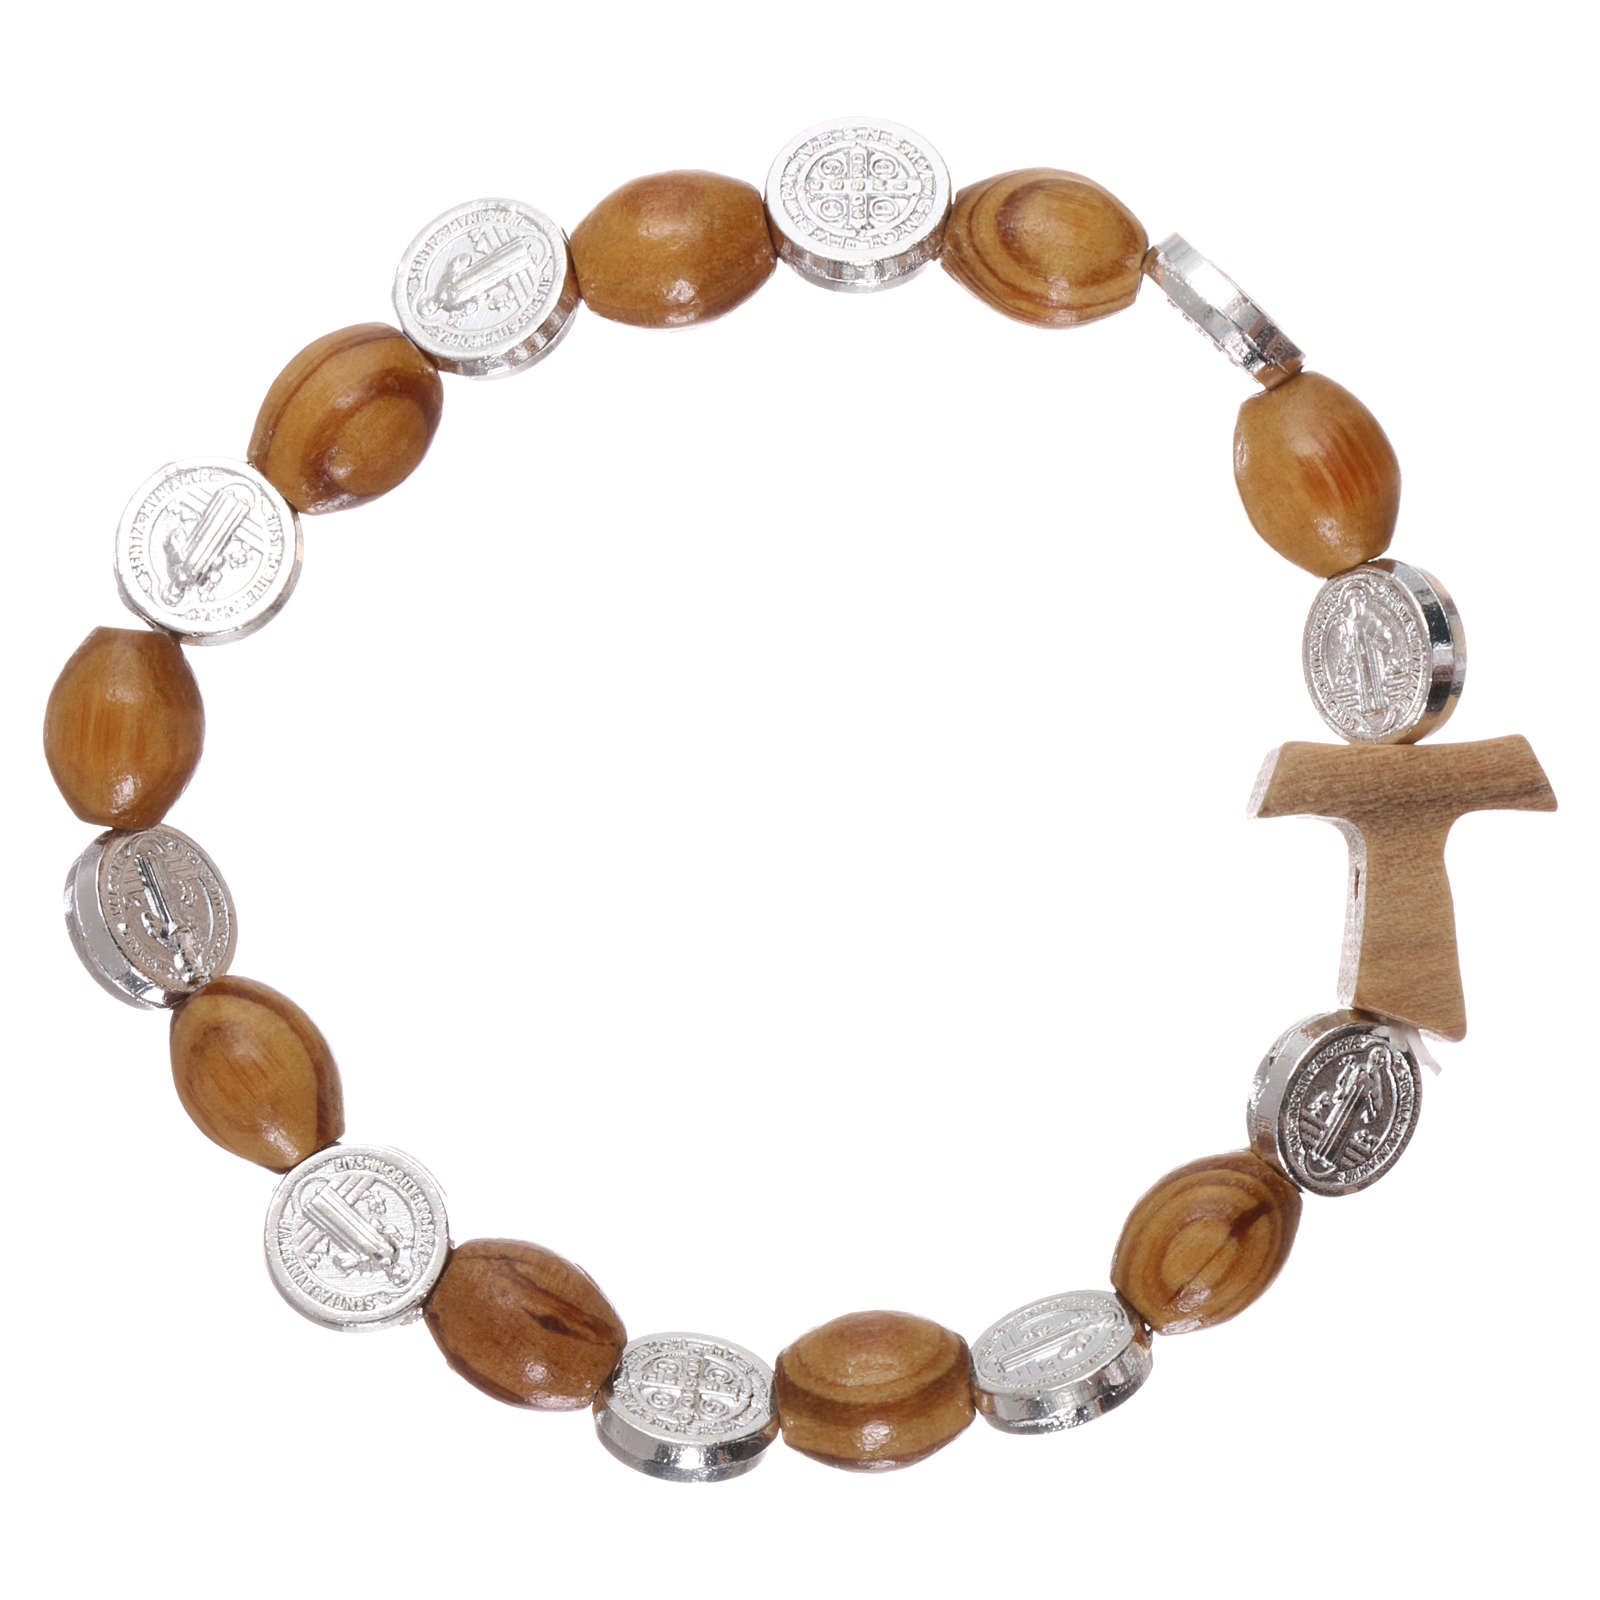 Rosary decade bracelet in pine and olive wood with Tau cross and oval grains 8x6 mm, Saint Benedict 4